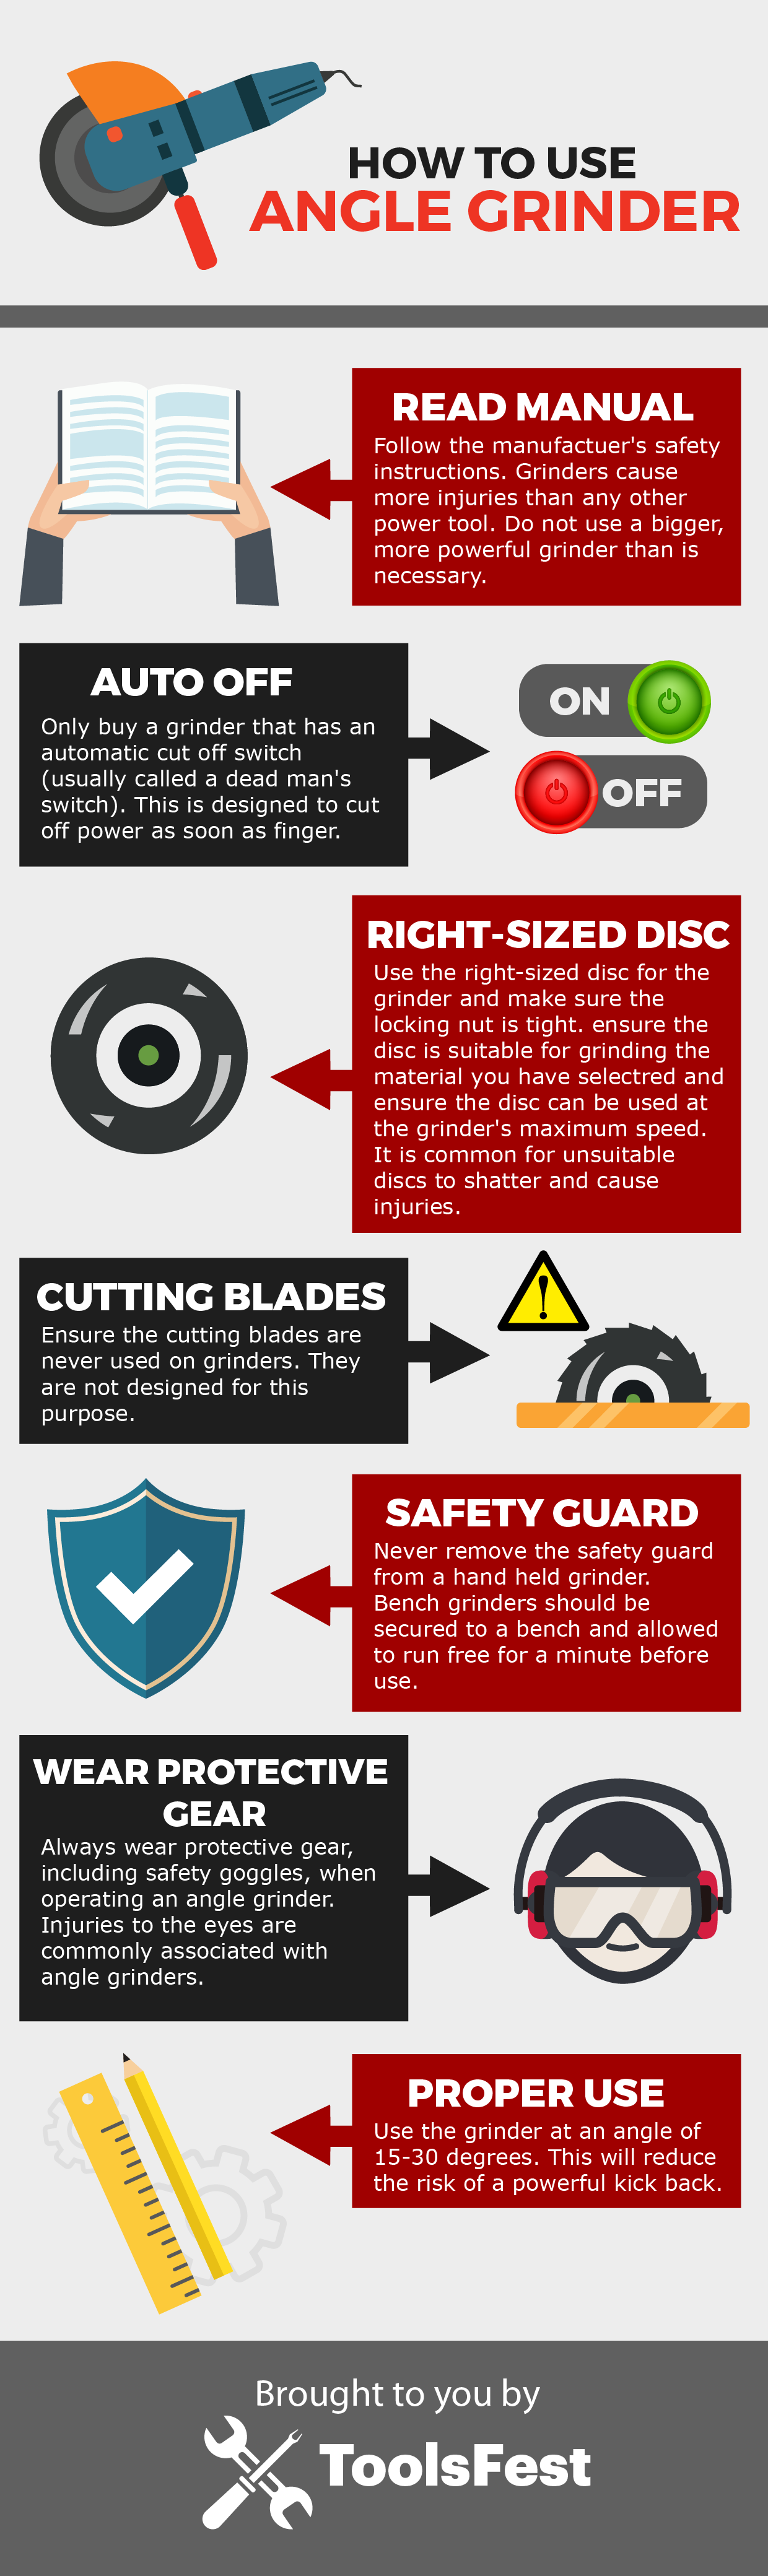 How To Use Angle Grinder Workplace Injury Health And Safety Safety Tips